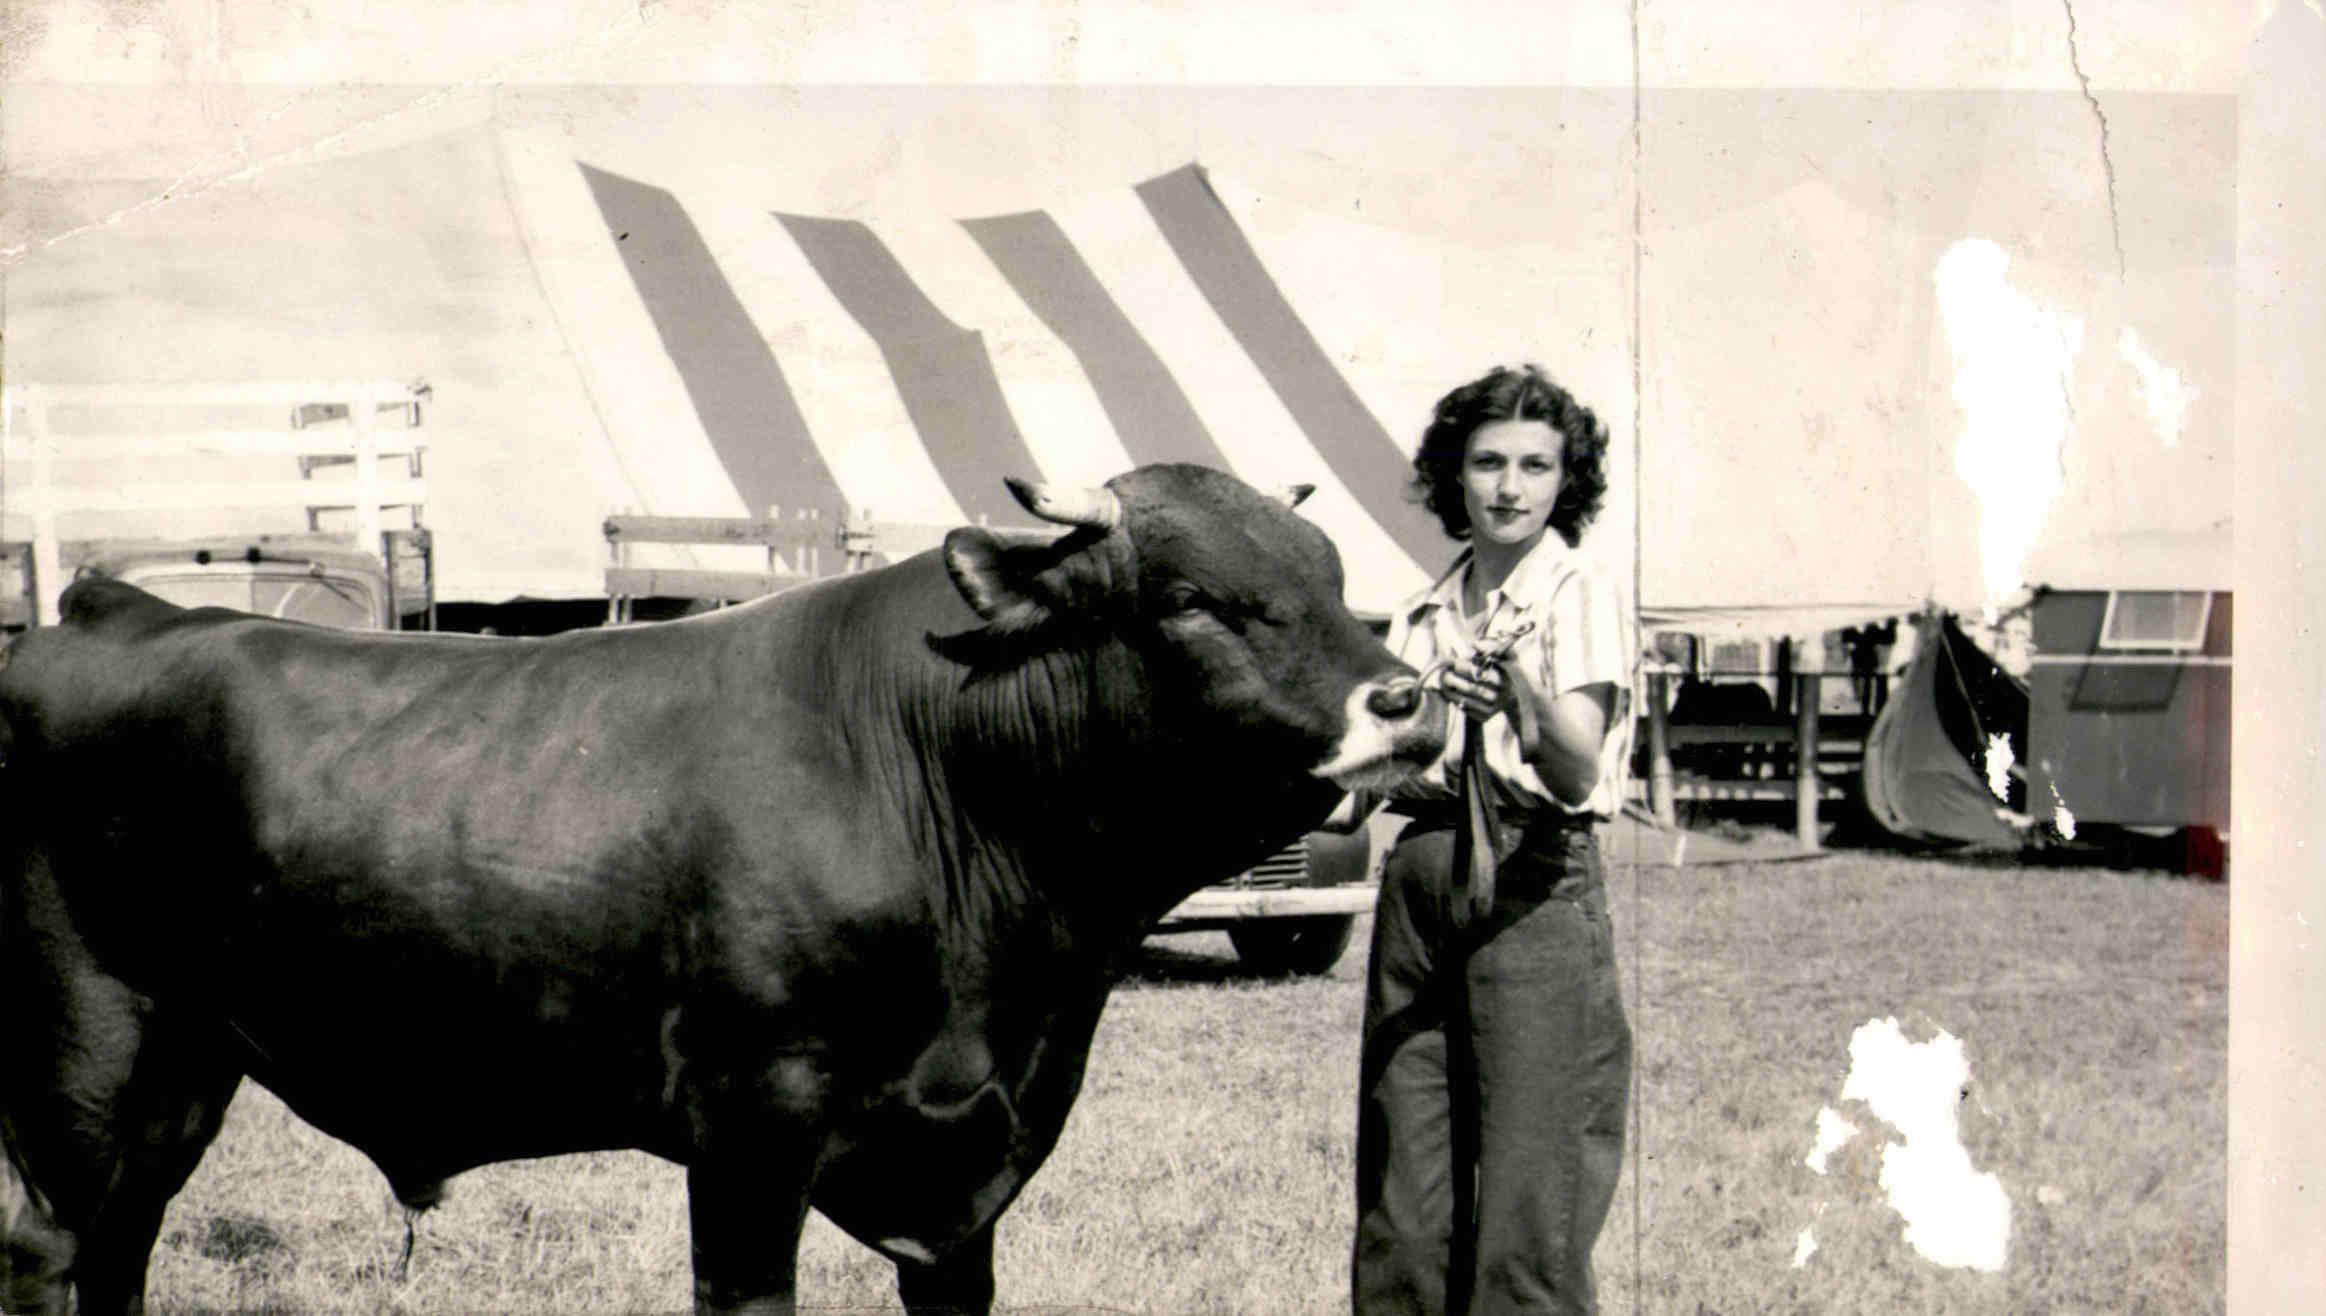 Woman with Bull at Fair, c. 1970s